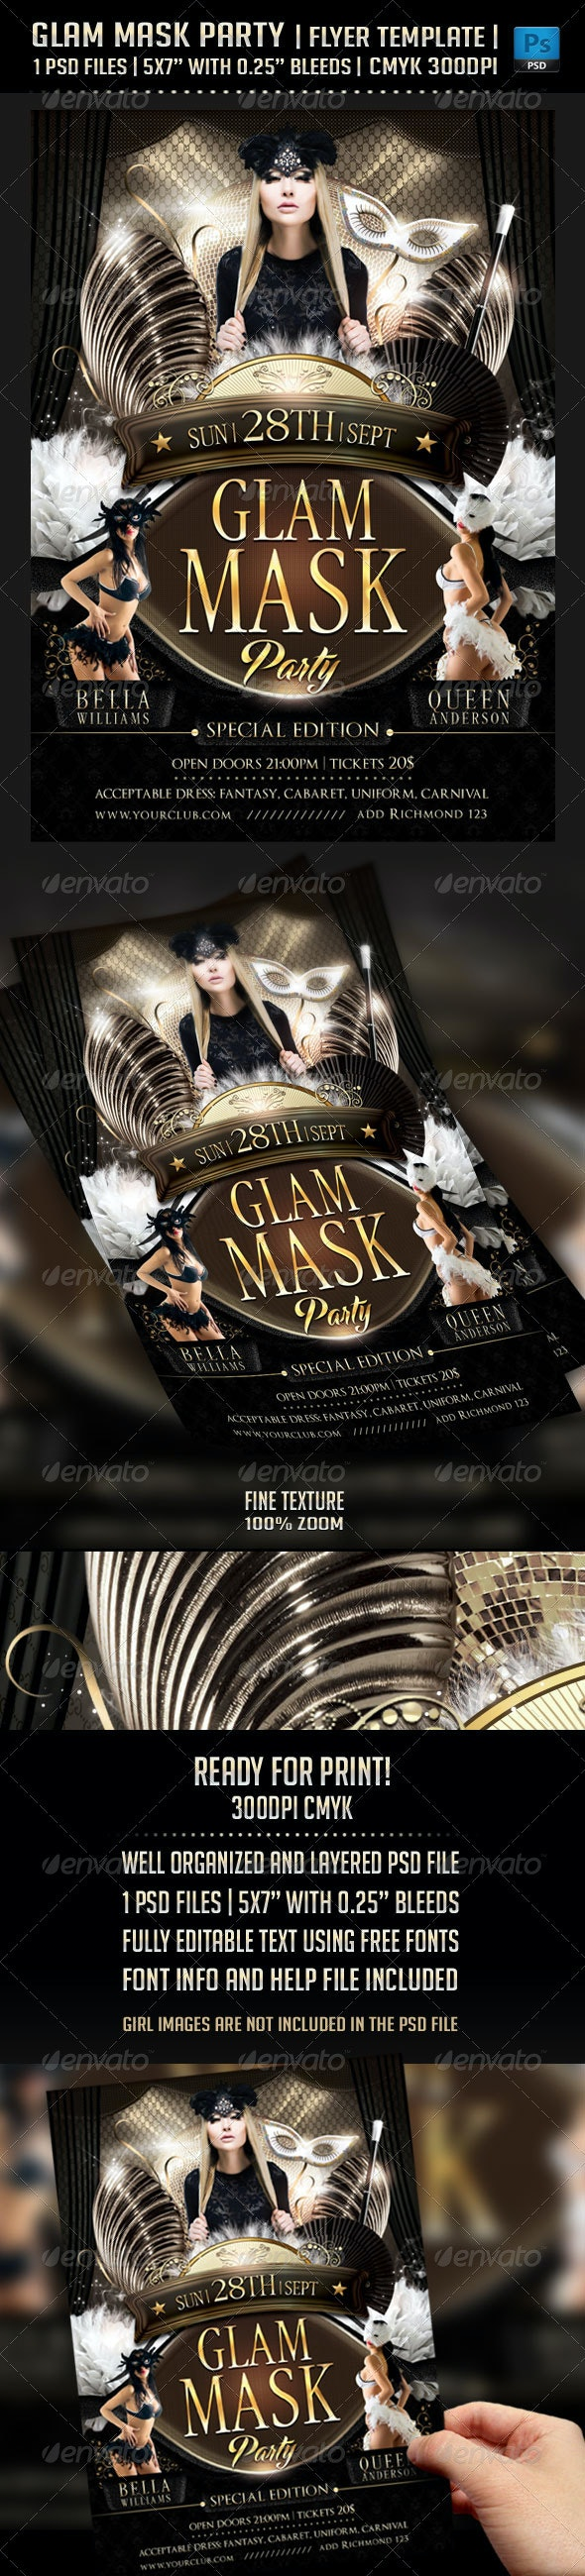 Glam Mask Party Flyer Template - Clubs & Parties Events